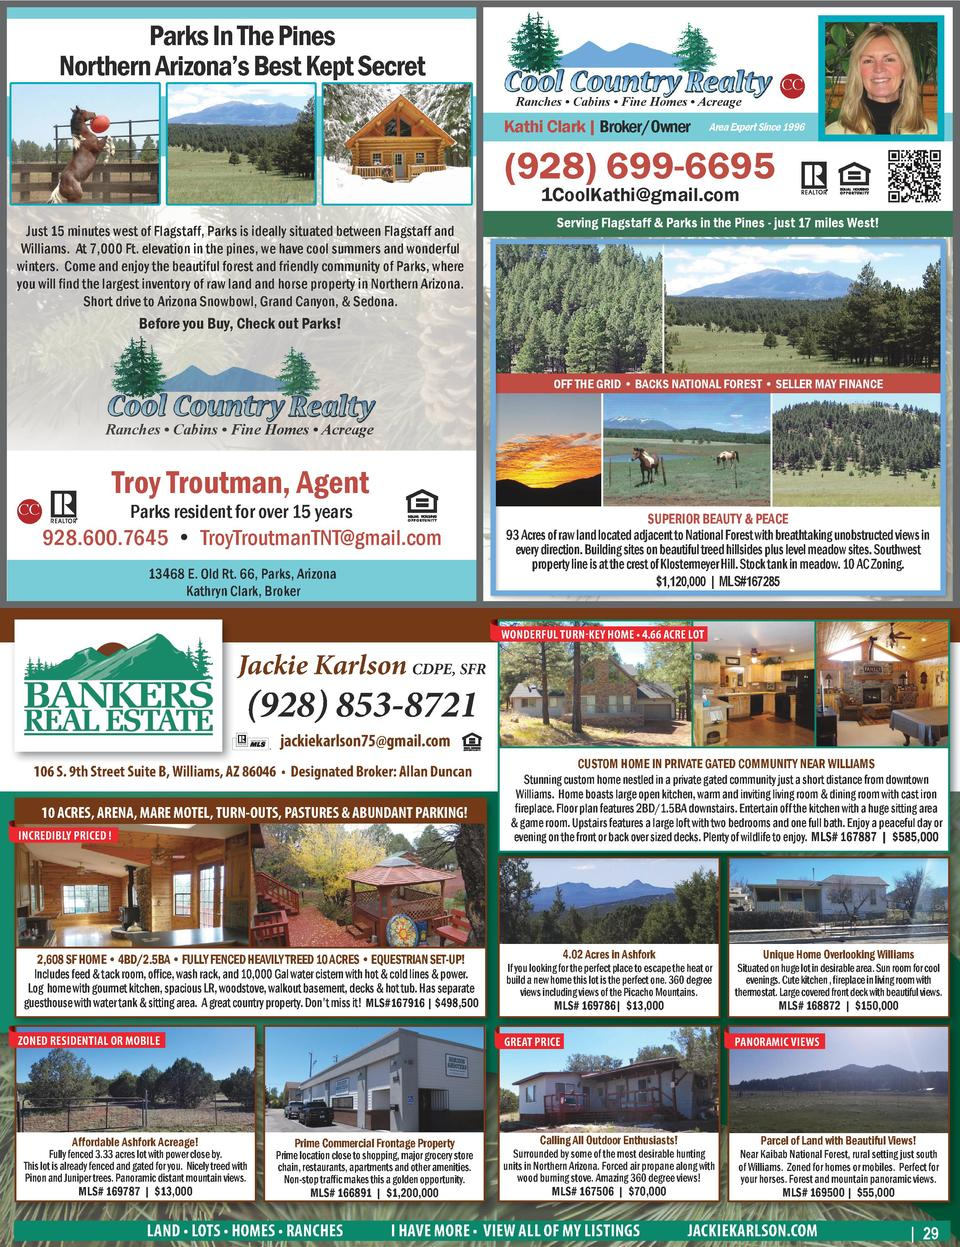 Parks In The Pines Northern Arizona   s Best Kept Secret Ranches     Cabins     Fine Homes     Acreage  Kathi Clark   Brok...